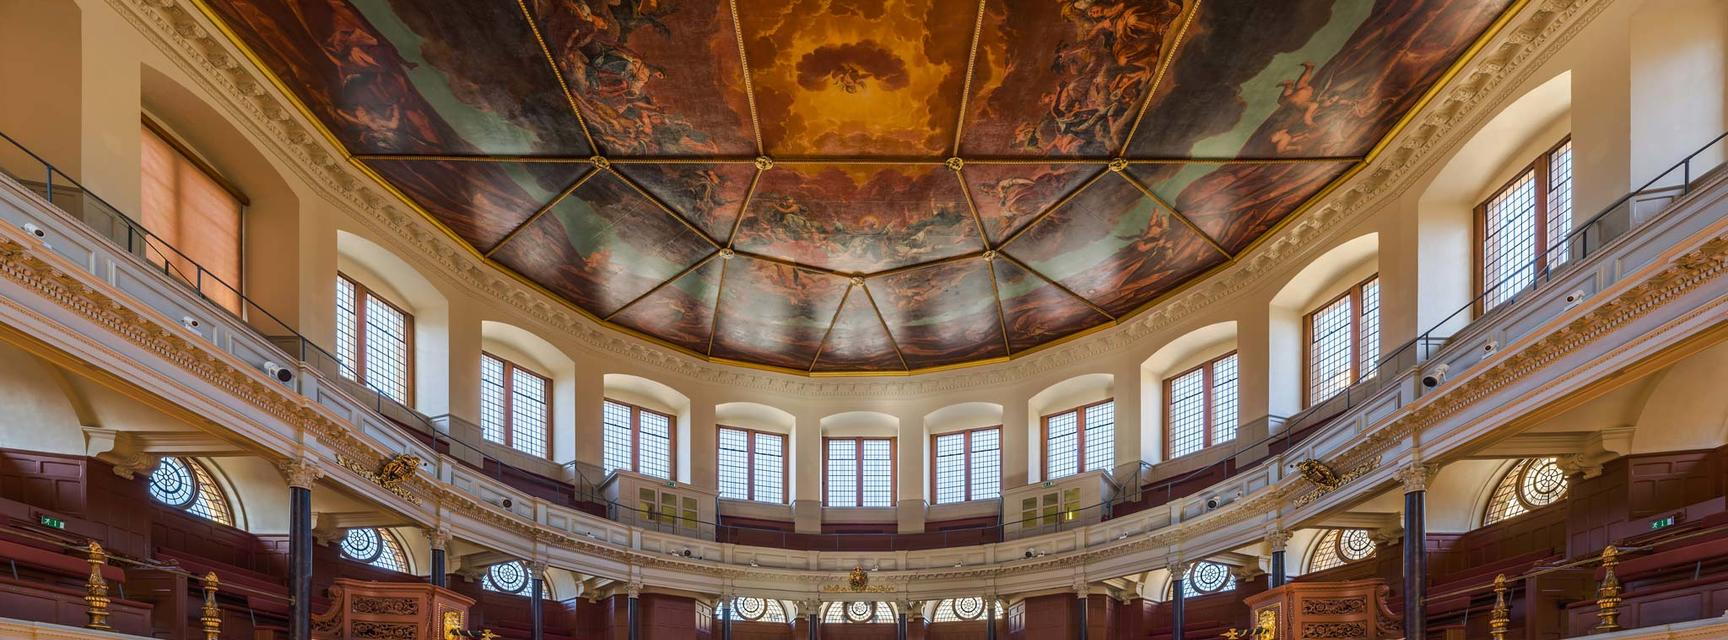 Photo of the inside of the Sheldonian Theatre with full view of the painted ceiling